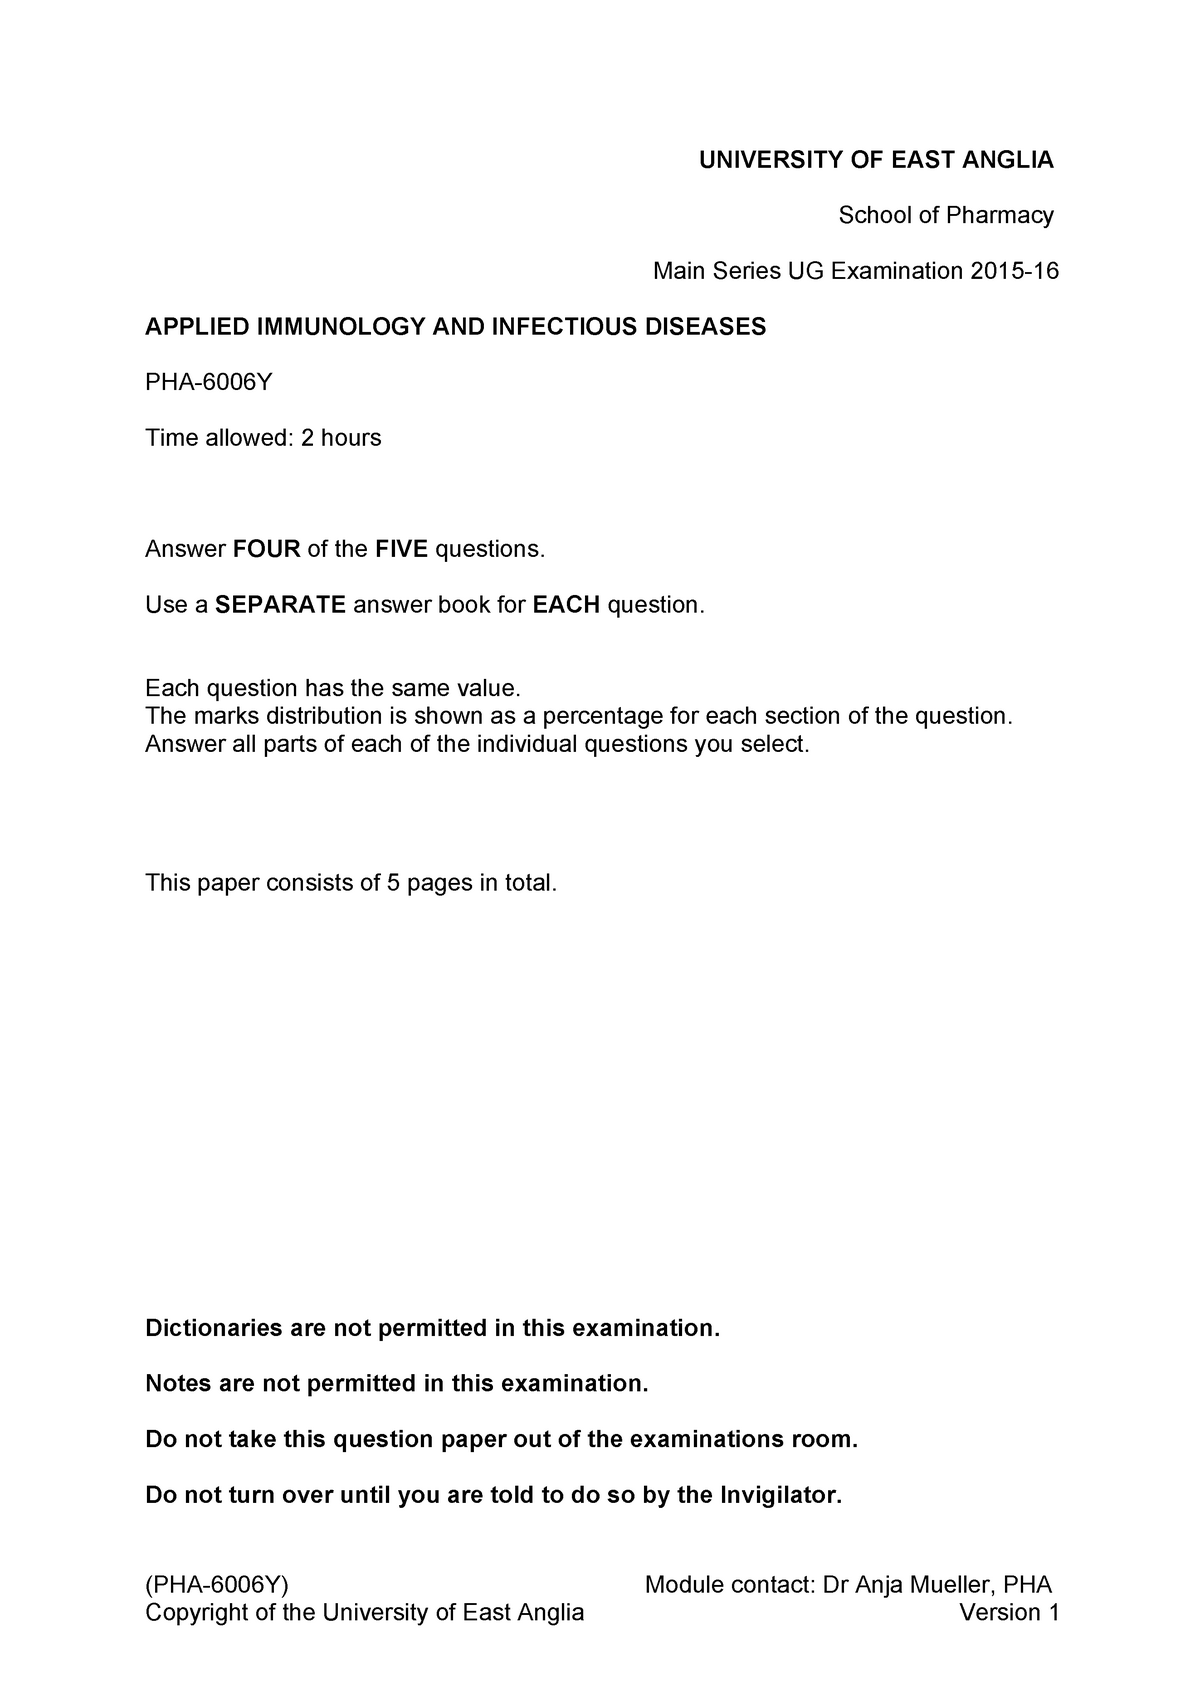 Exam 2015 - PHA-6006Y: Applied Immunology And Infectious